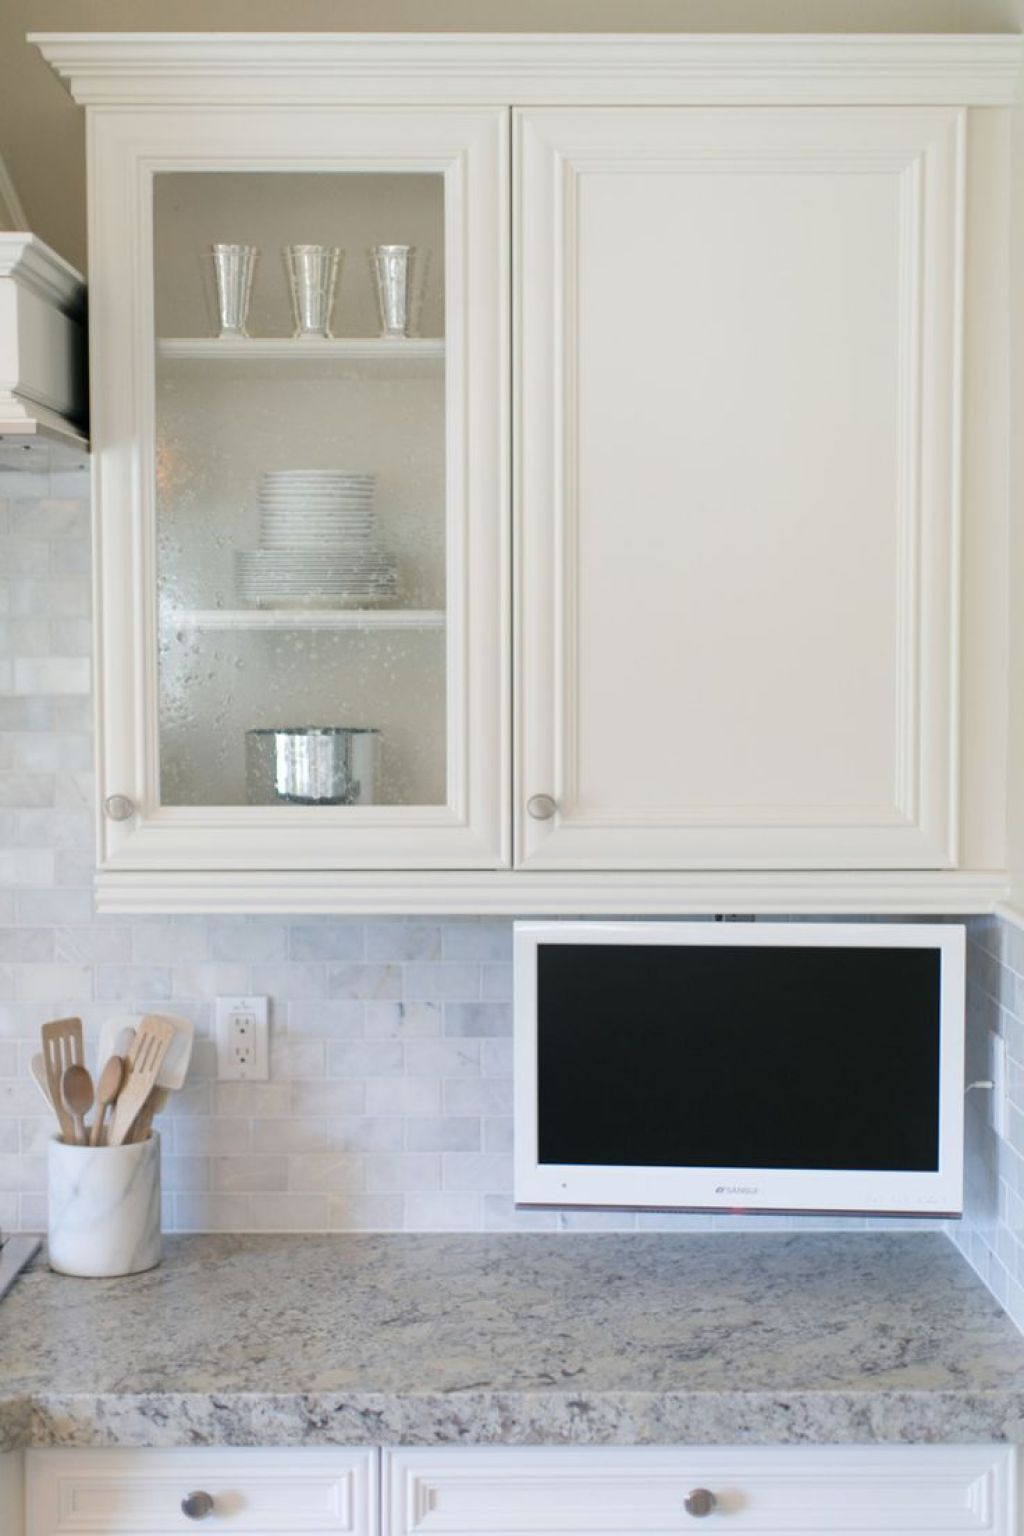 Adding A Kitchen Tv Can Be A Great Idea Tv In Kitchen Small Kitchen Tv Small Kitchen Renovations